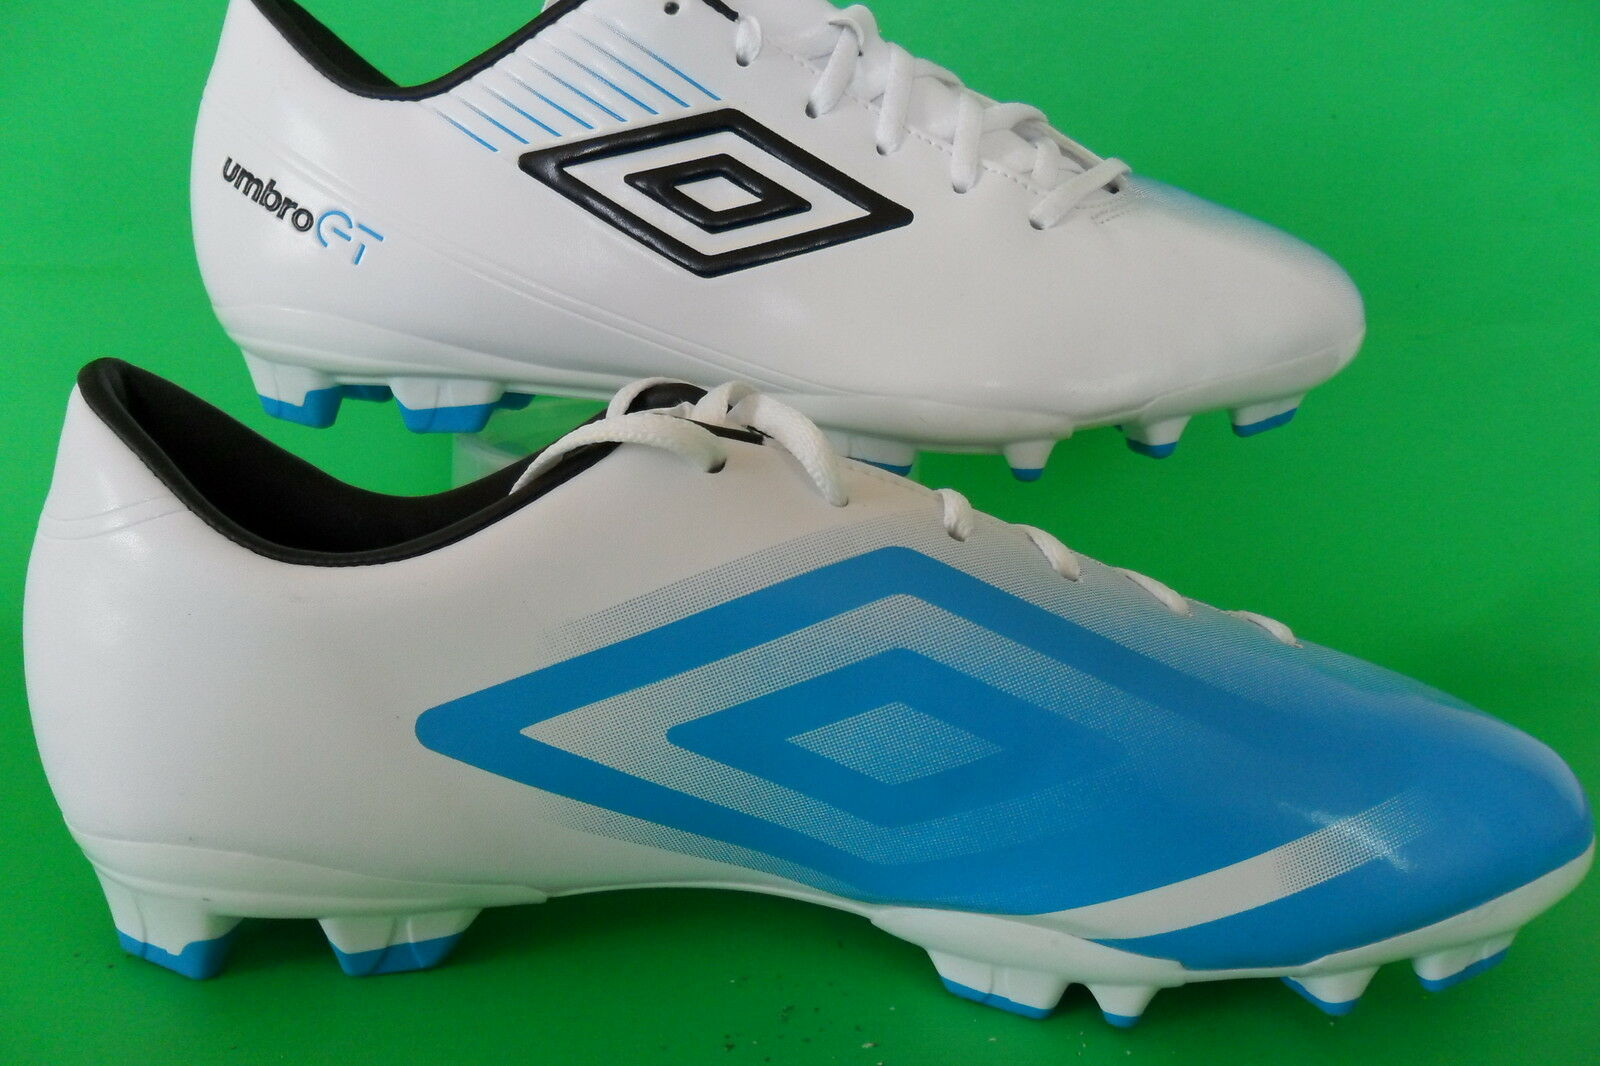 ~NEW~Umbro Diamond Icon GT II CUP Football Soccer Boot Cleats shoes~Uomo size 12